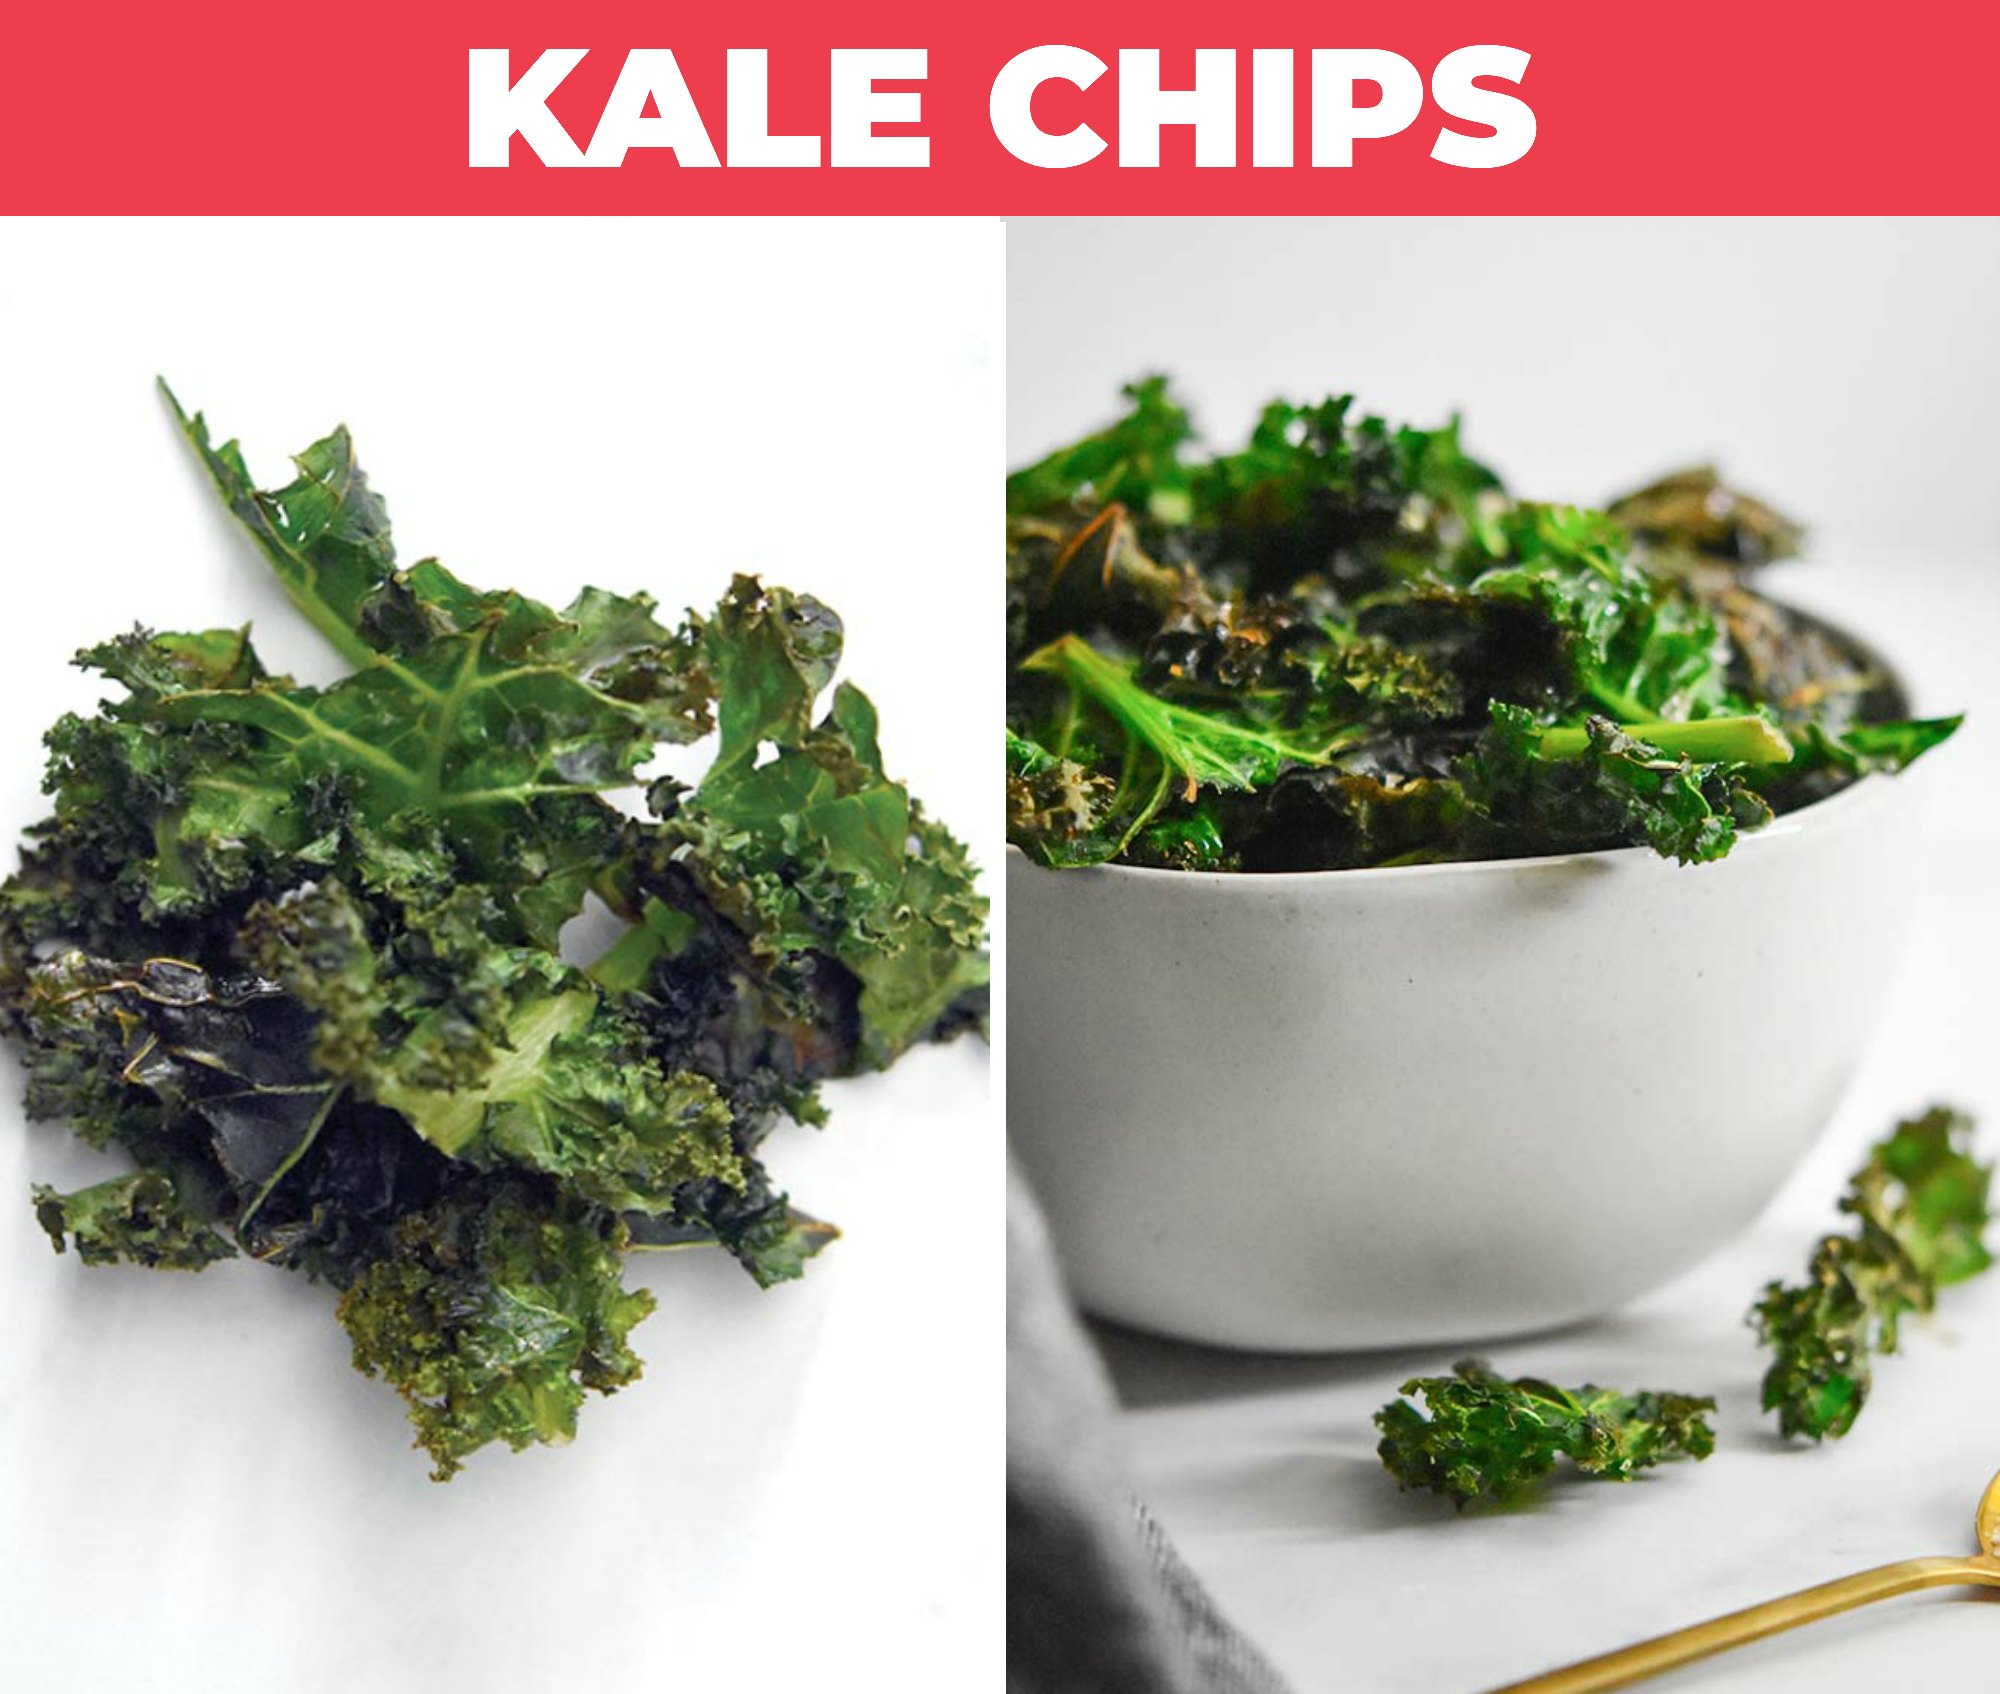 Images of kale chips